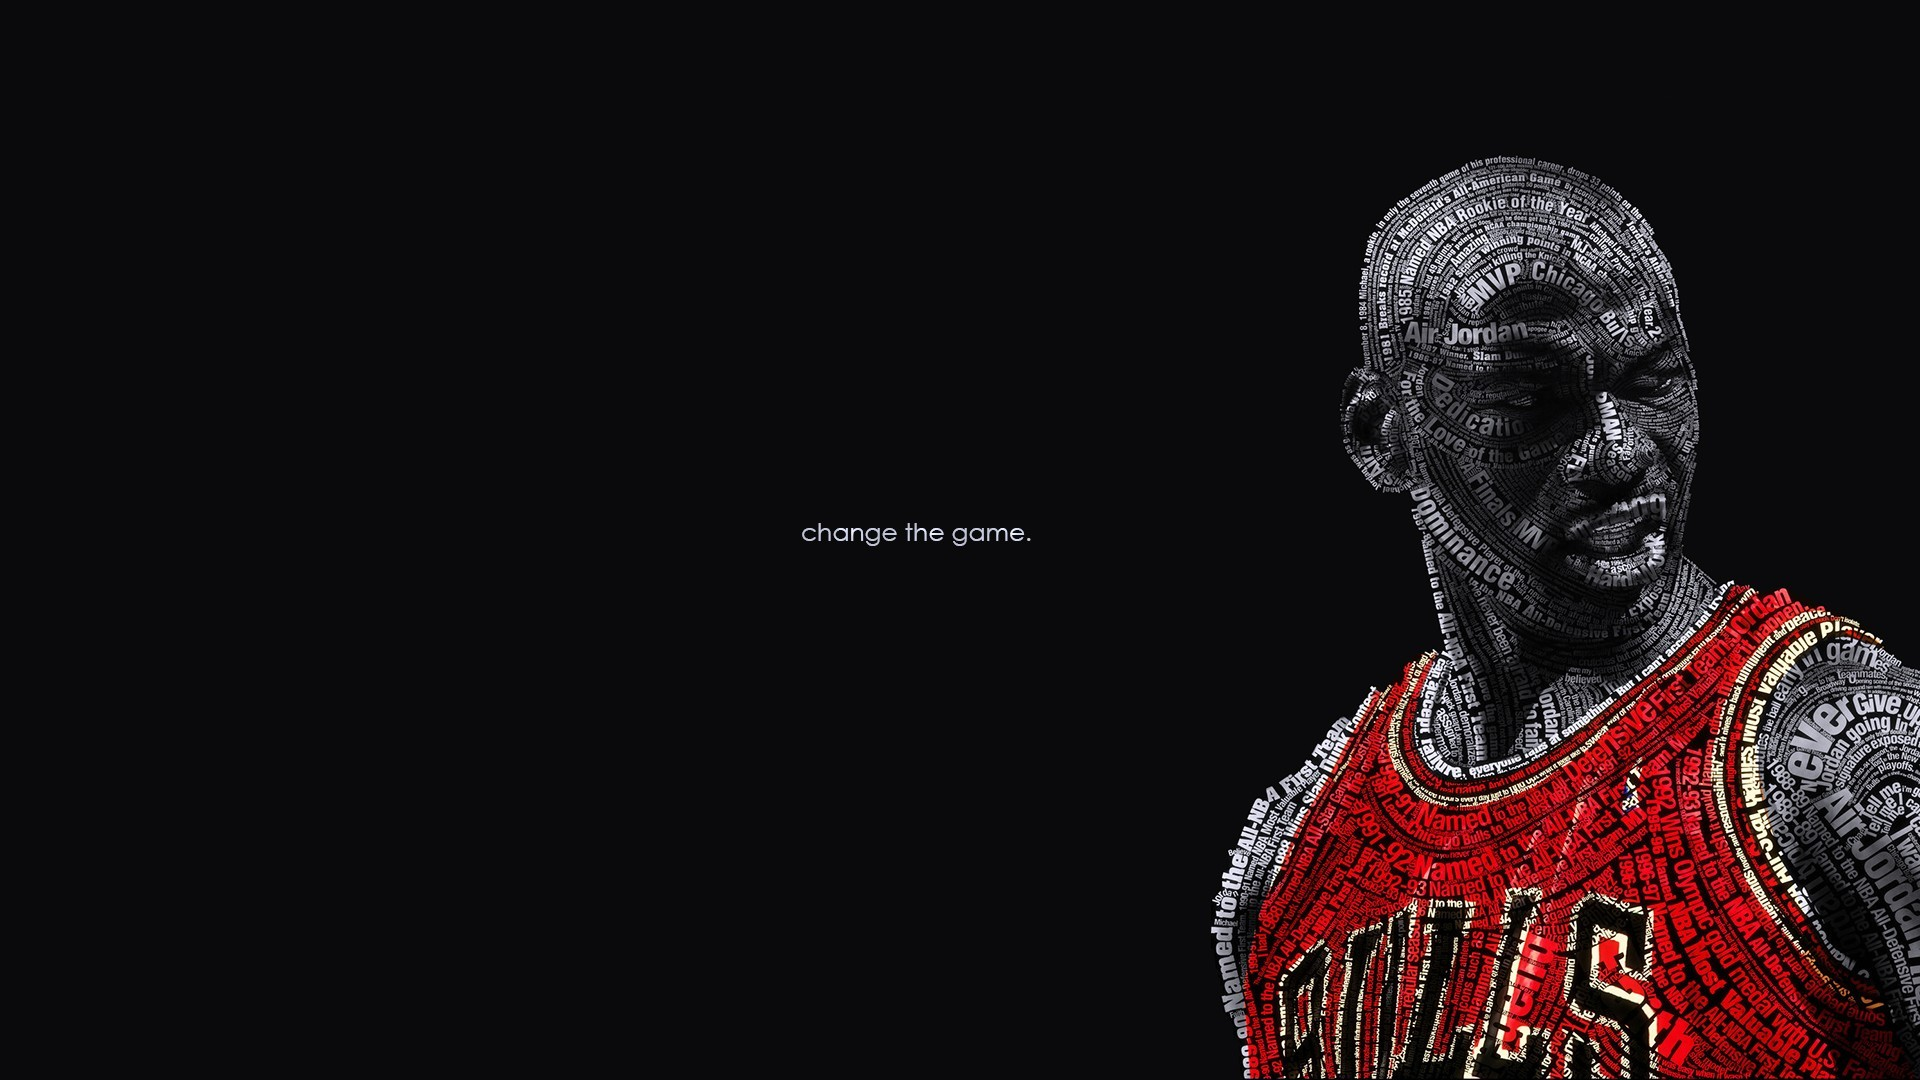 Best Basketball Hd Wallpaper For Desktop And Mobiles Iphone